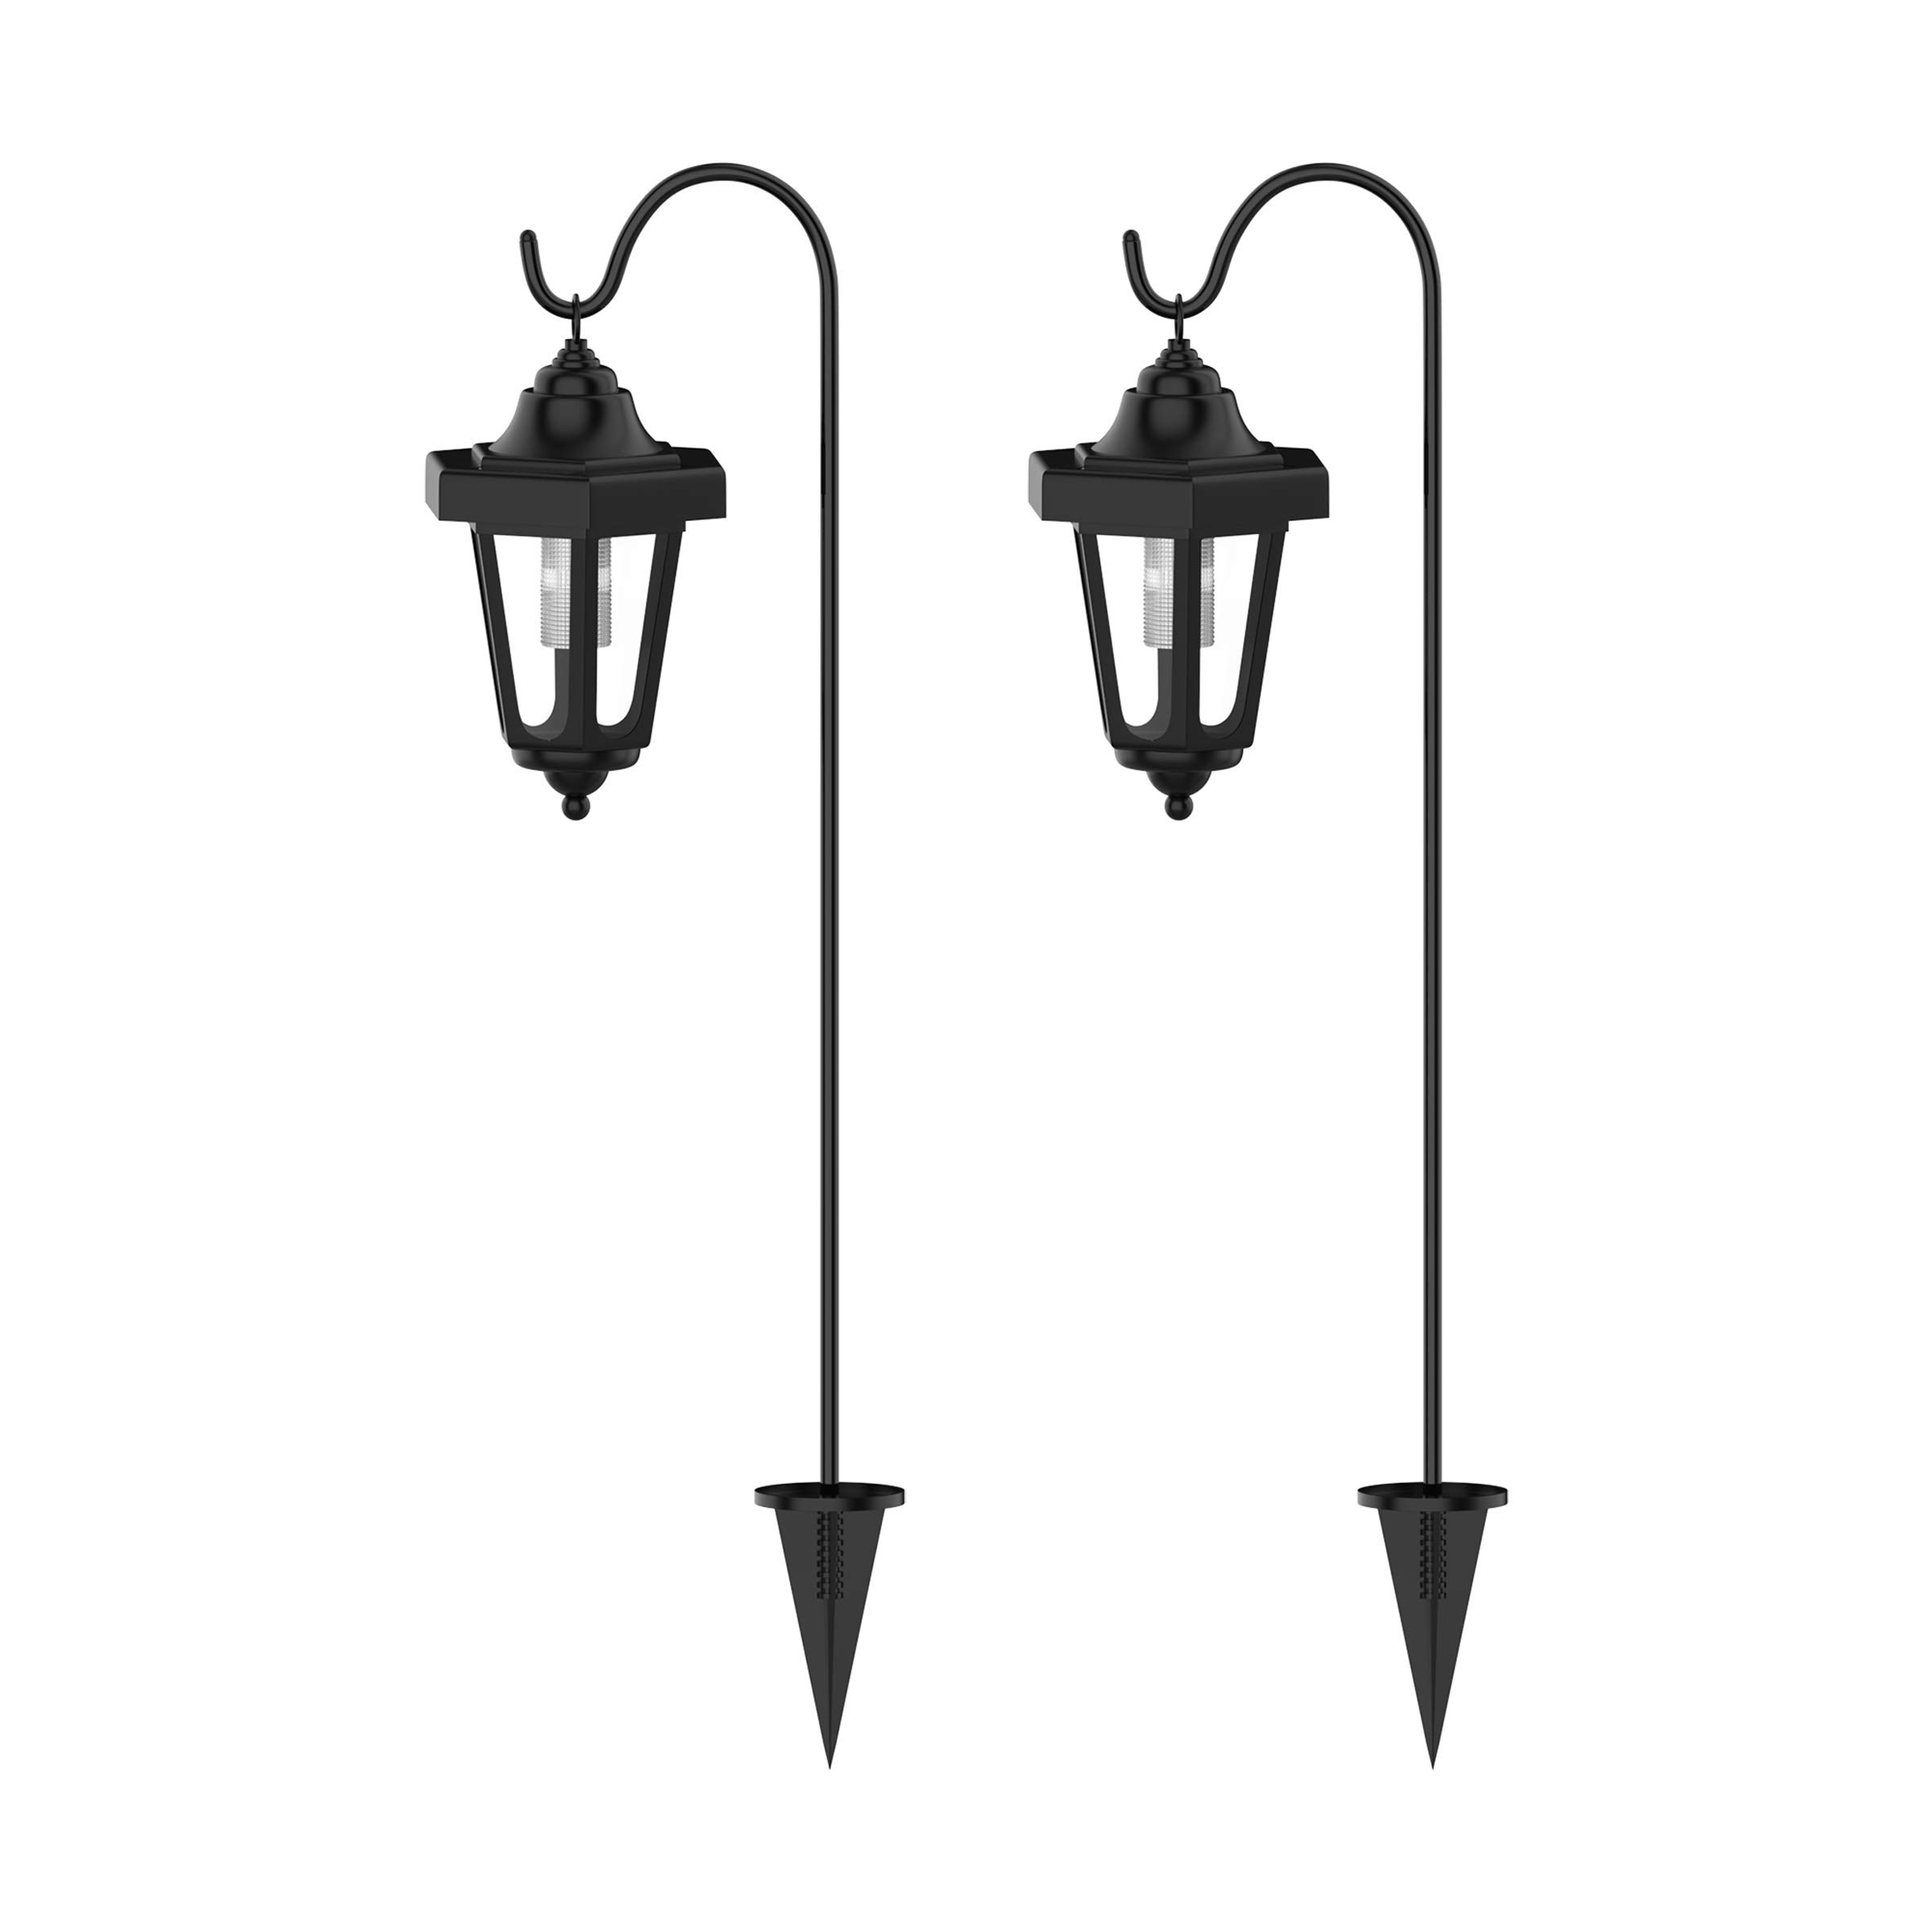 Pure Garden Solar Powered Lights-Set of 2, 32'' Hanging Coach Lanterns with 2 Shepherd Hooks-LED Outdoor Lighting for Gardens, Pathways, and Patio